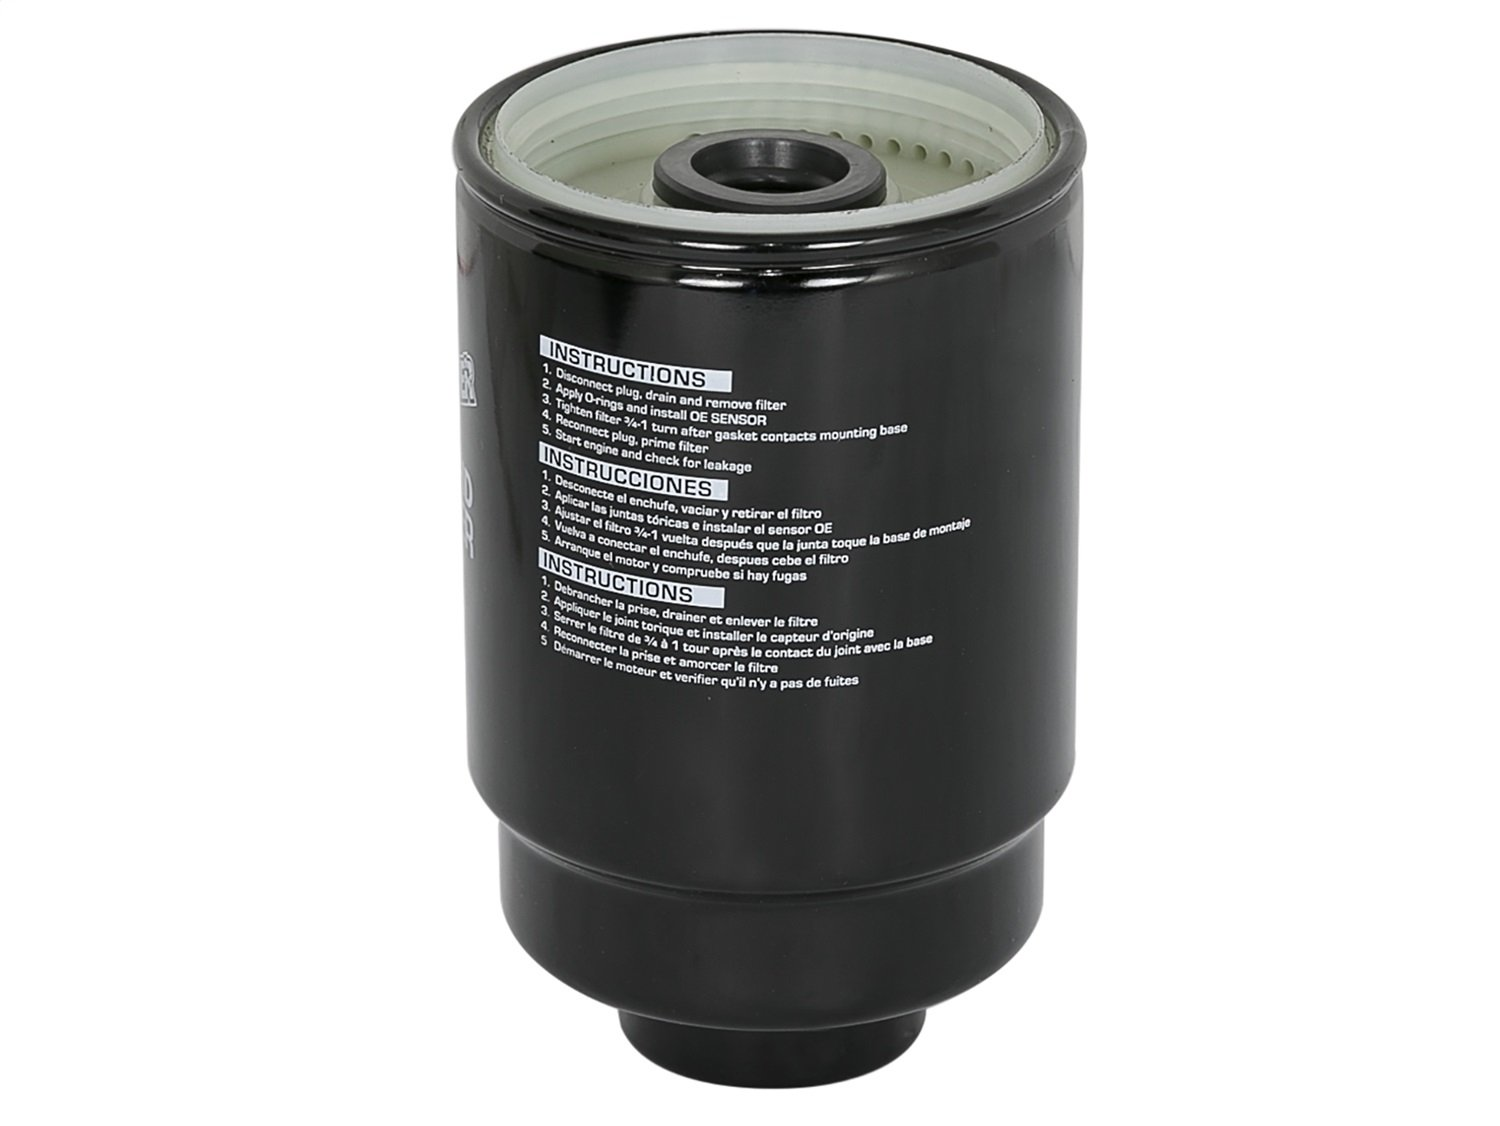 Afe Power 44 Ff011 Pro Guard D2 Fuel Filter Gm Automotive High Performance Diesel Filters